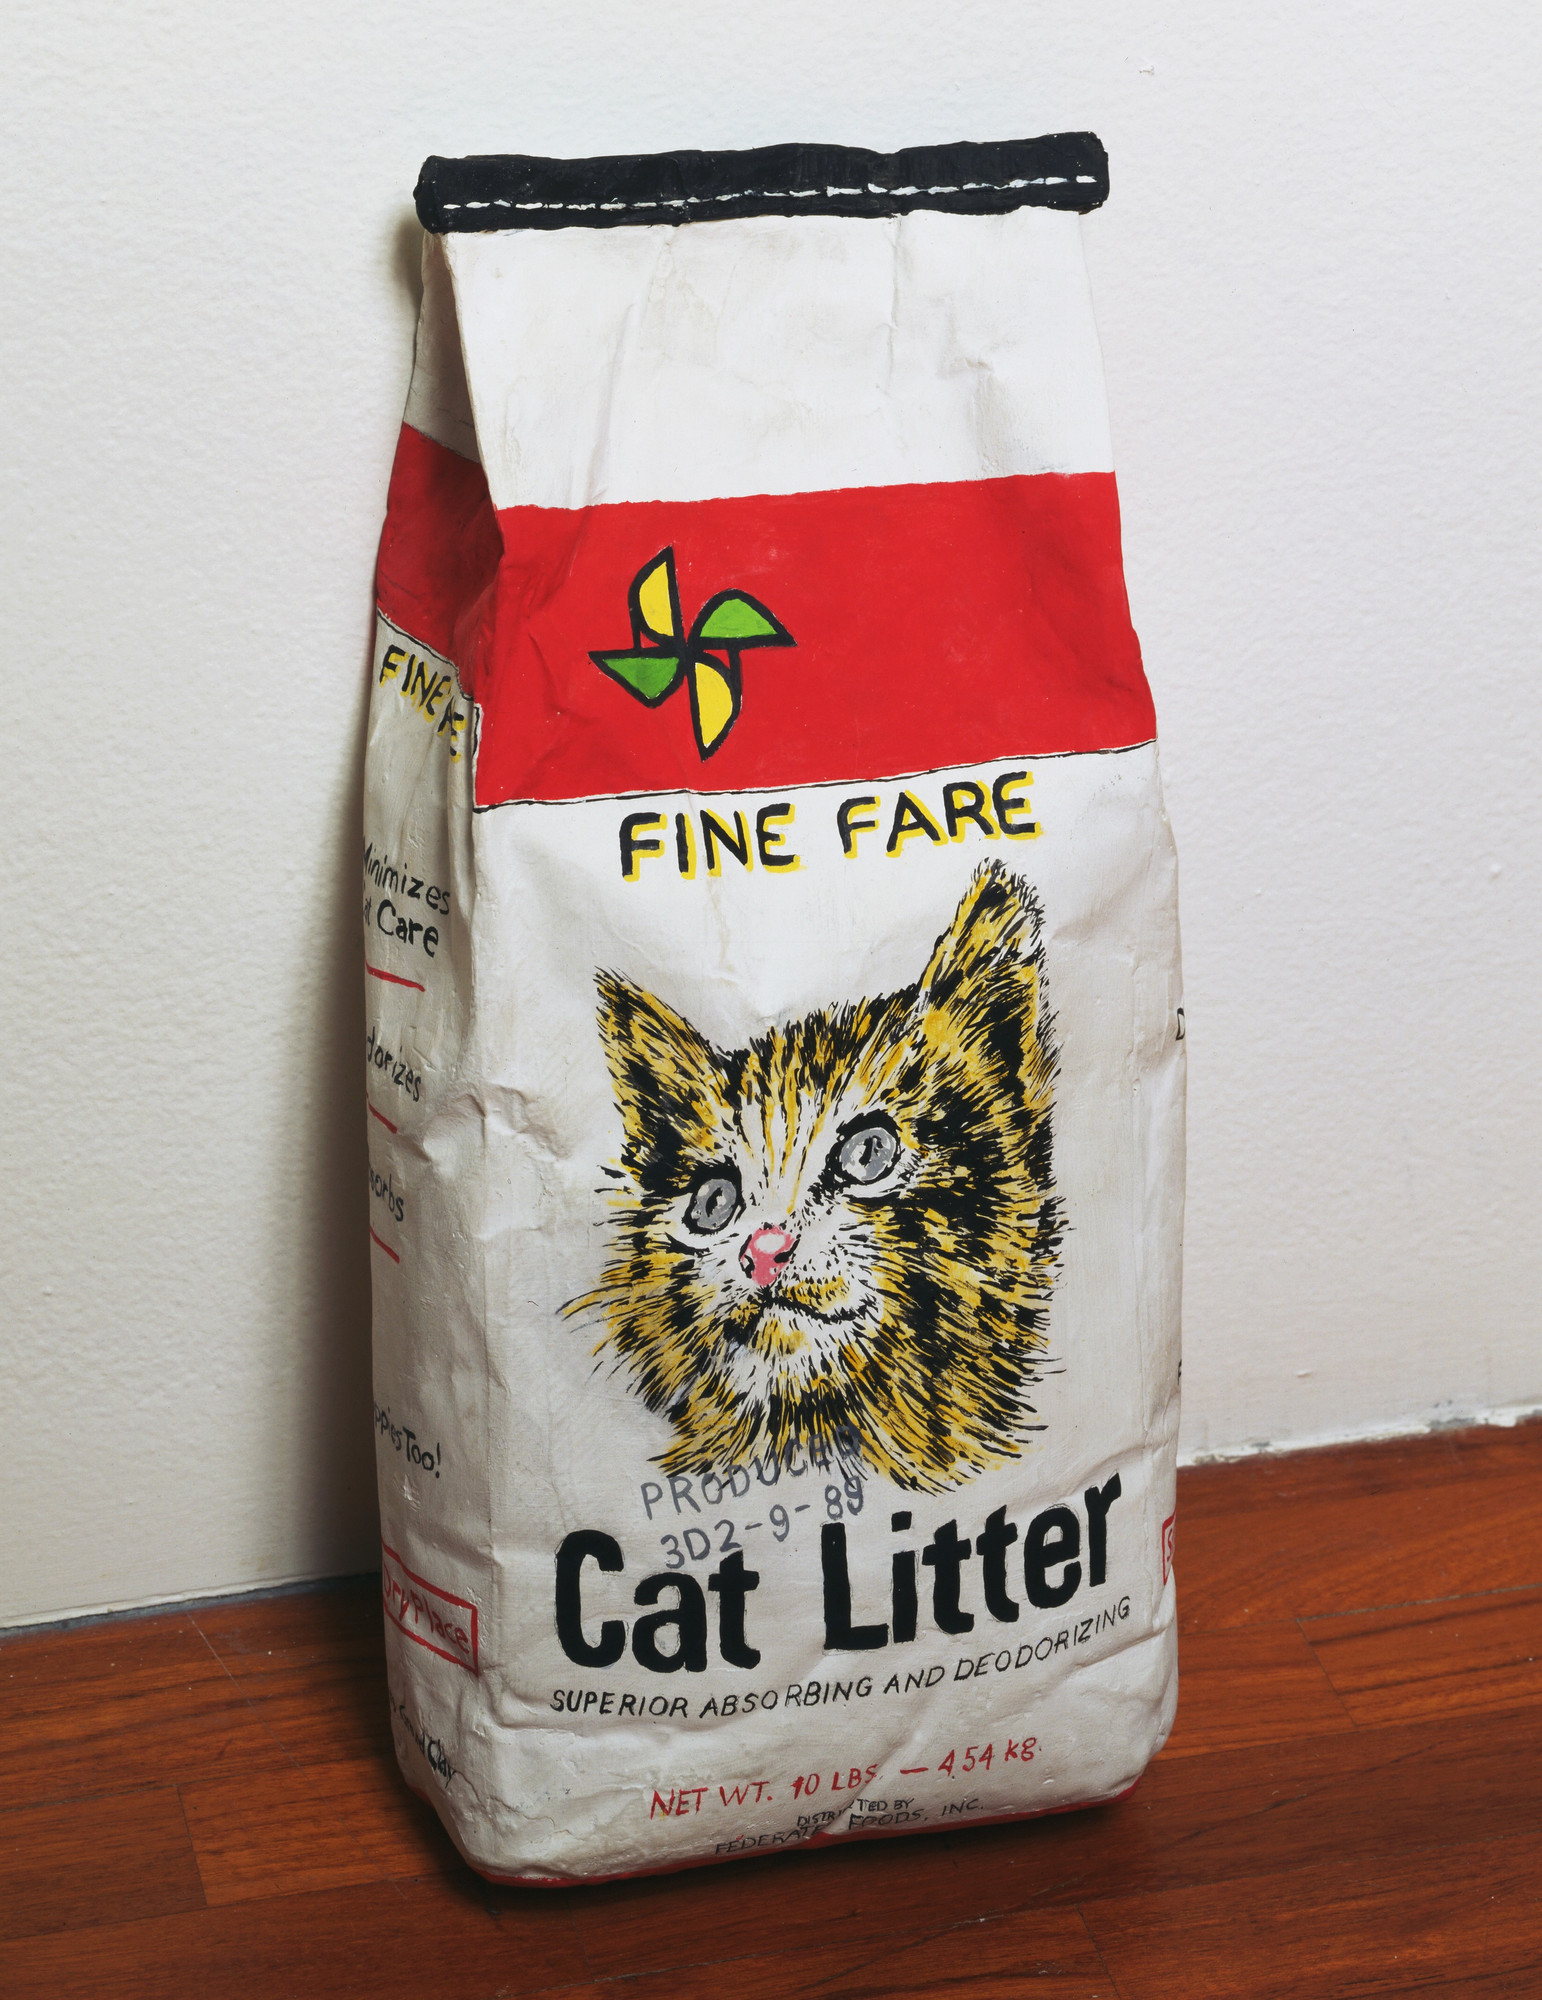 Robert Gober. Cat Litter. 1989